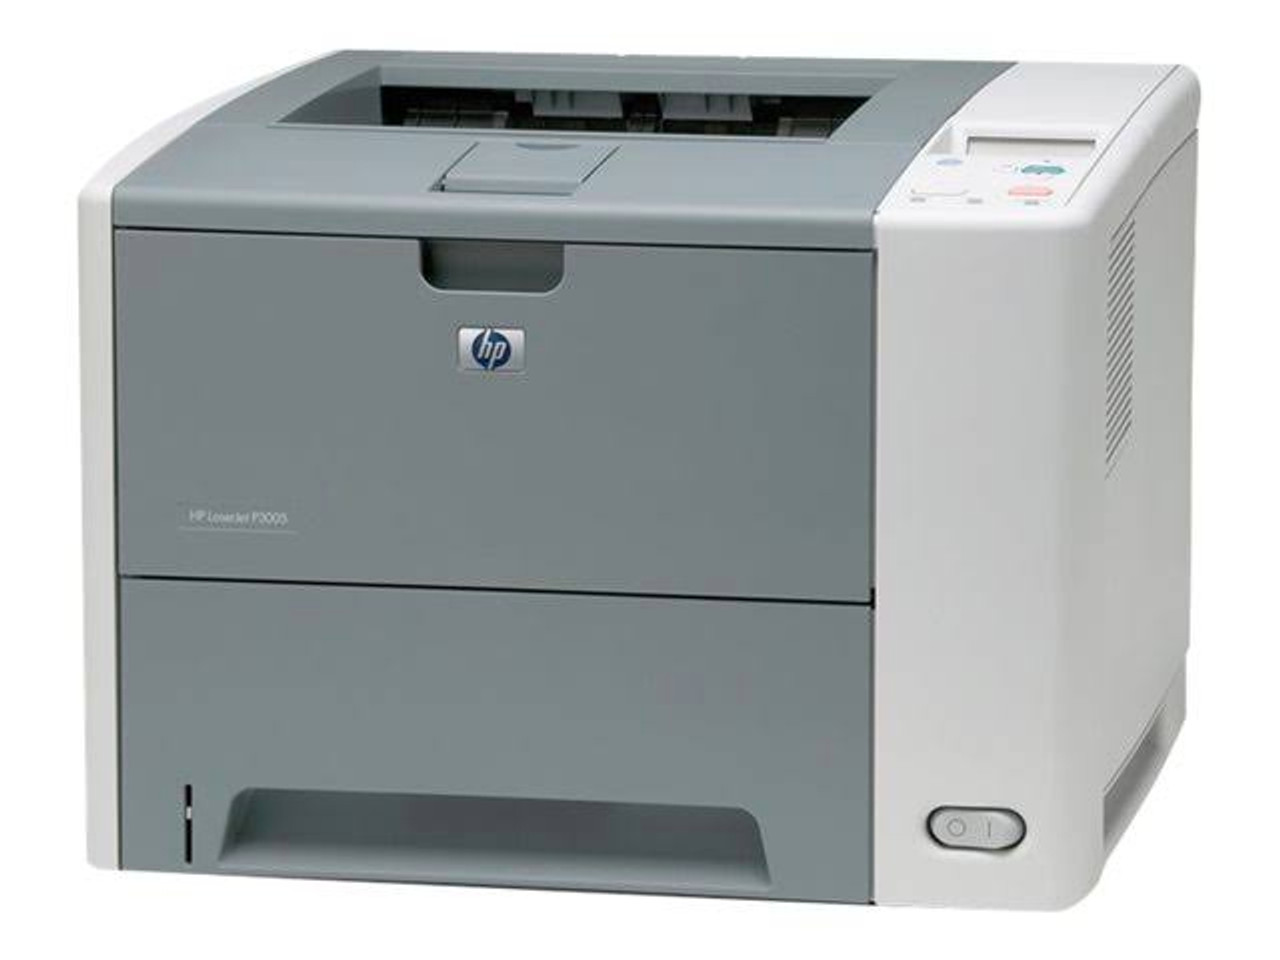 HP LaserJet P3005 - Q7812A#ABA - HP Laser Printer for sale